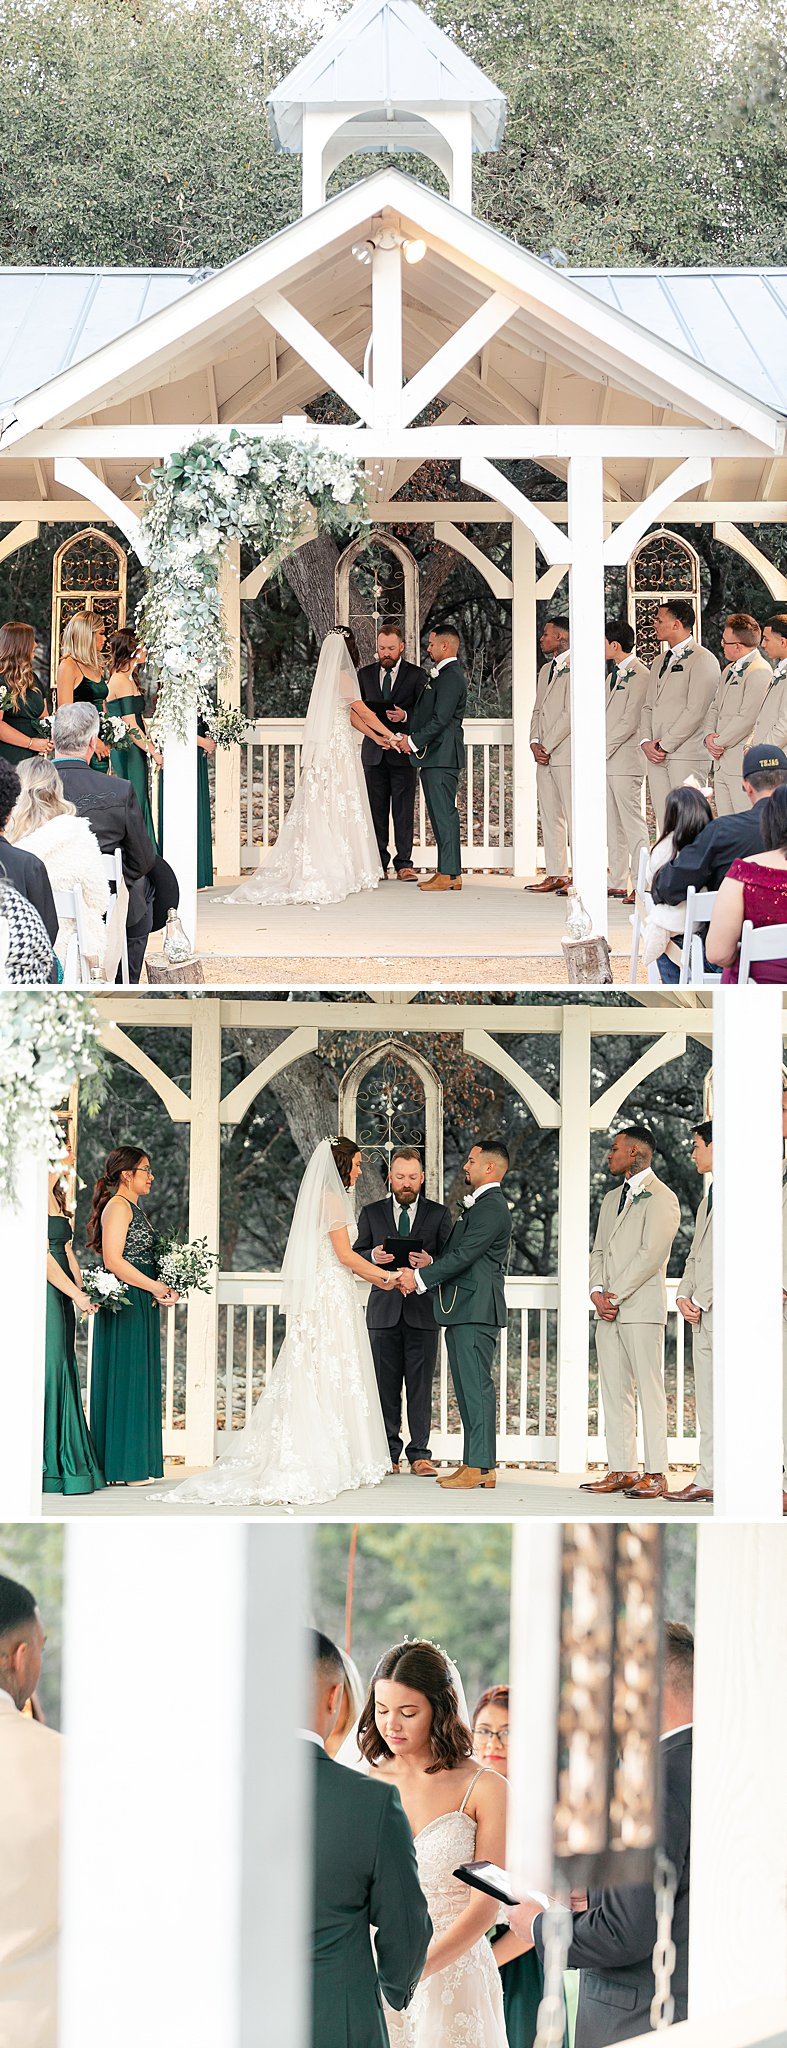 Carly-Barton-Photography-Texas-Wedding-Photographer-Western-Sky-Wedding-Event-Venue-Emerald-Green-Theme_0019.jpg